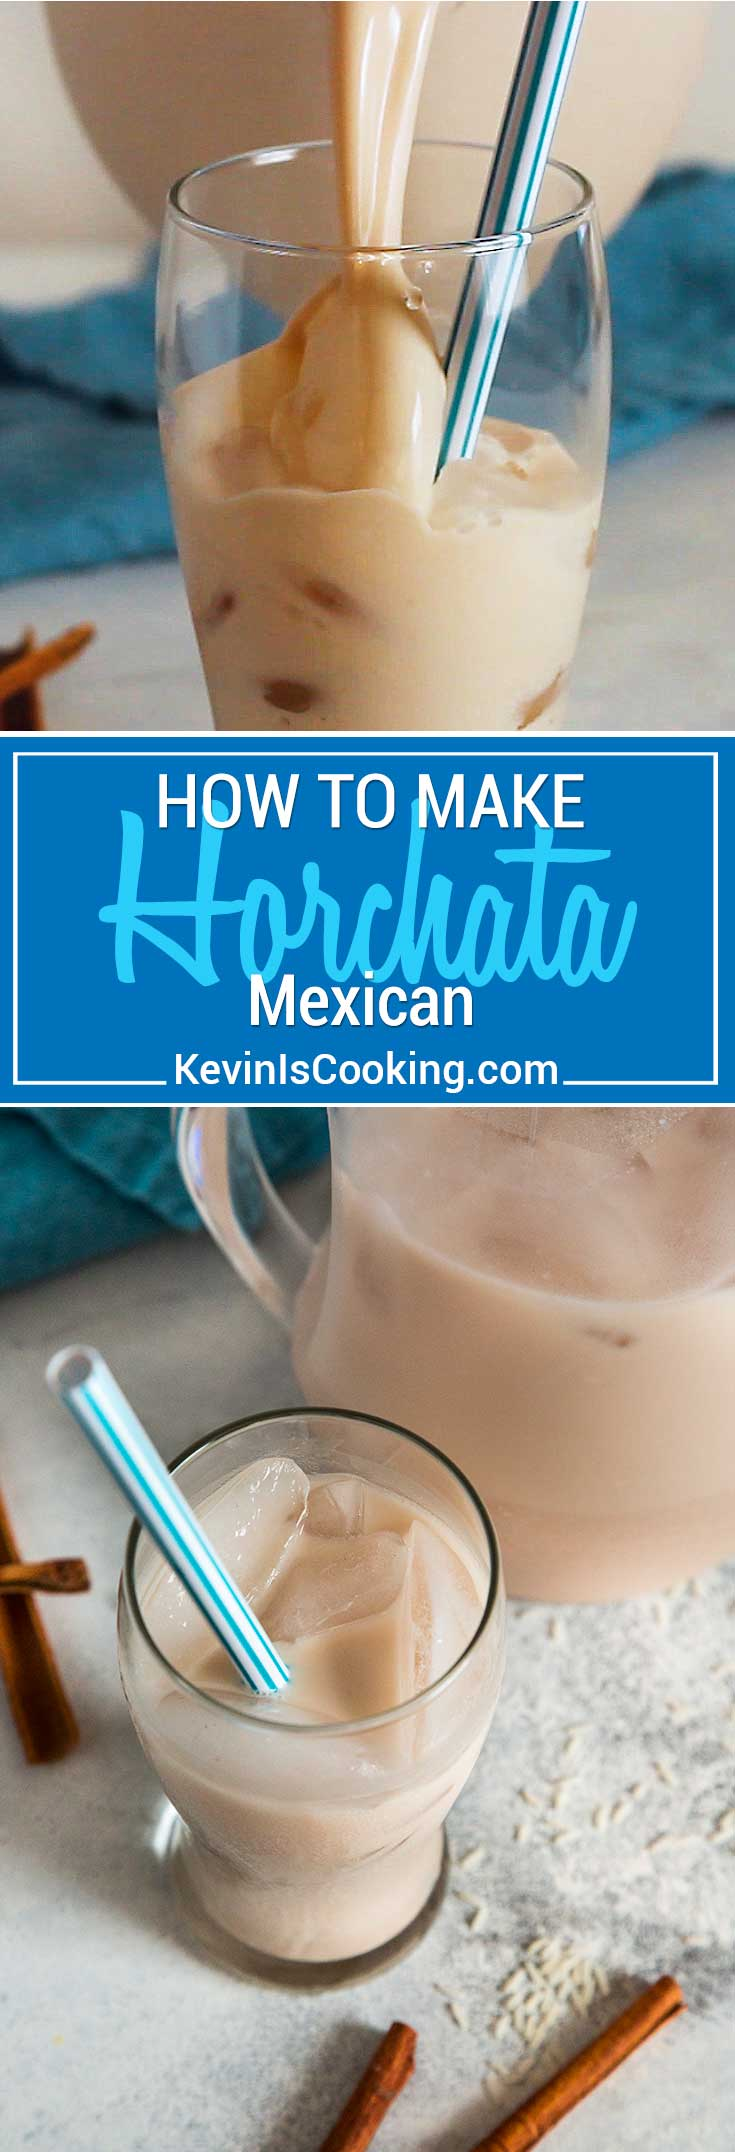 Horchata is a sweet, non-alcoholic Mexican beverage made from water, rice and cinnamon. My tasty version has a few ingredients that other recipes lack.